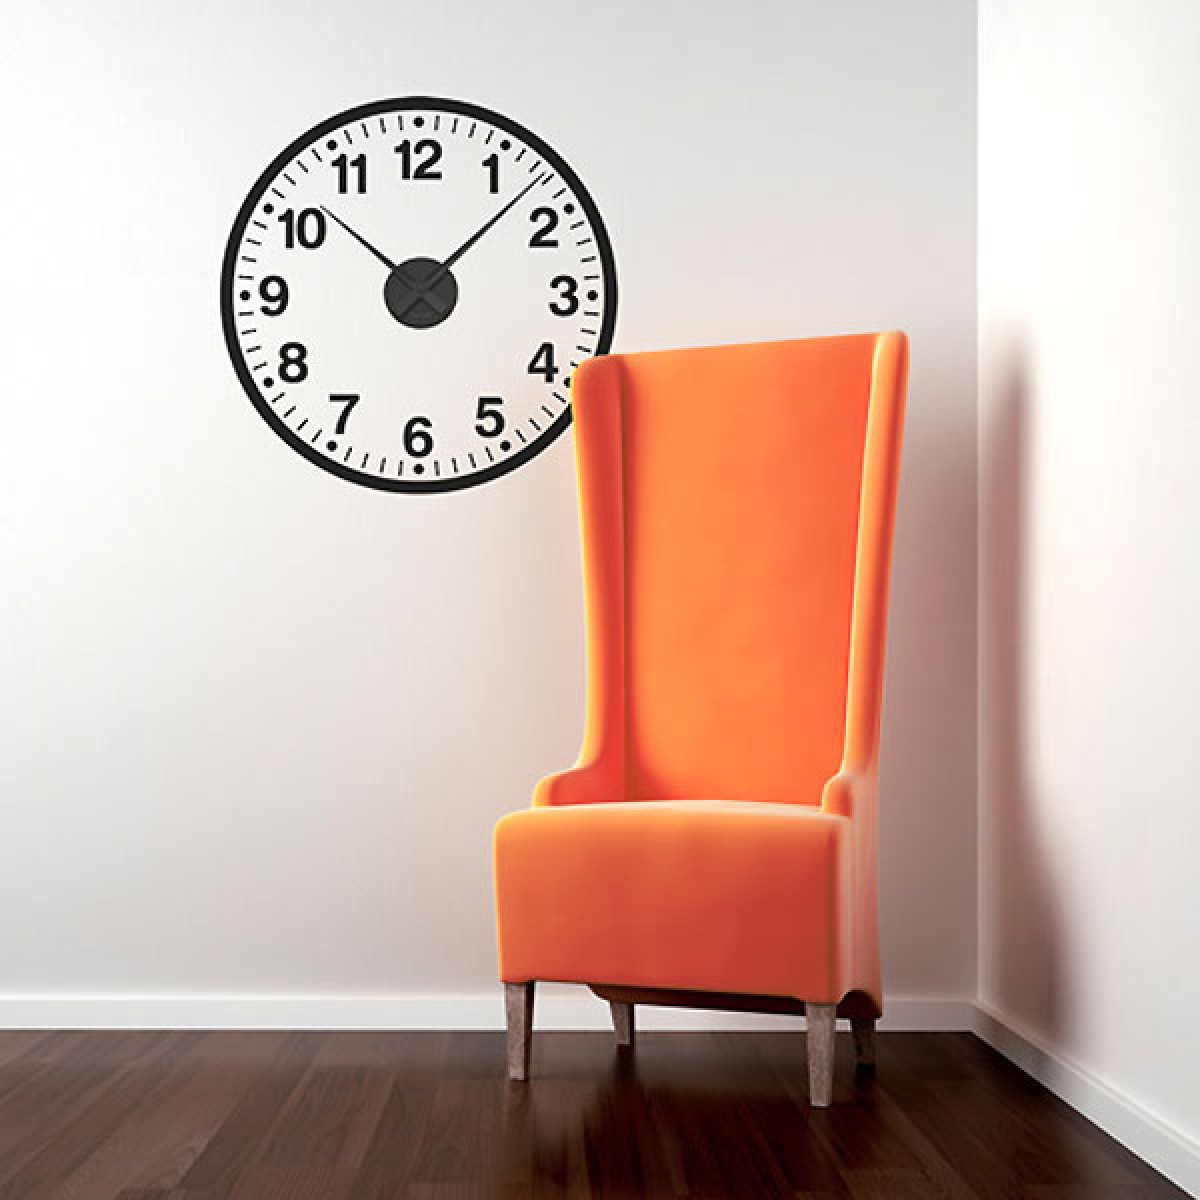 Alarm clock wall sticker spin collective clock stickers school clock wall sticker amipublicfo Gallery